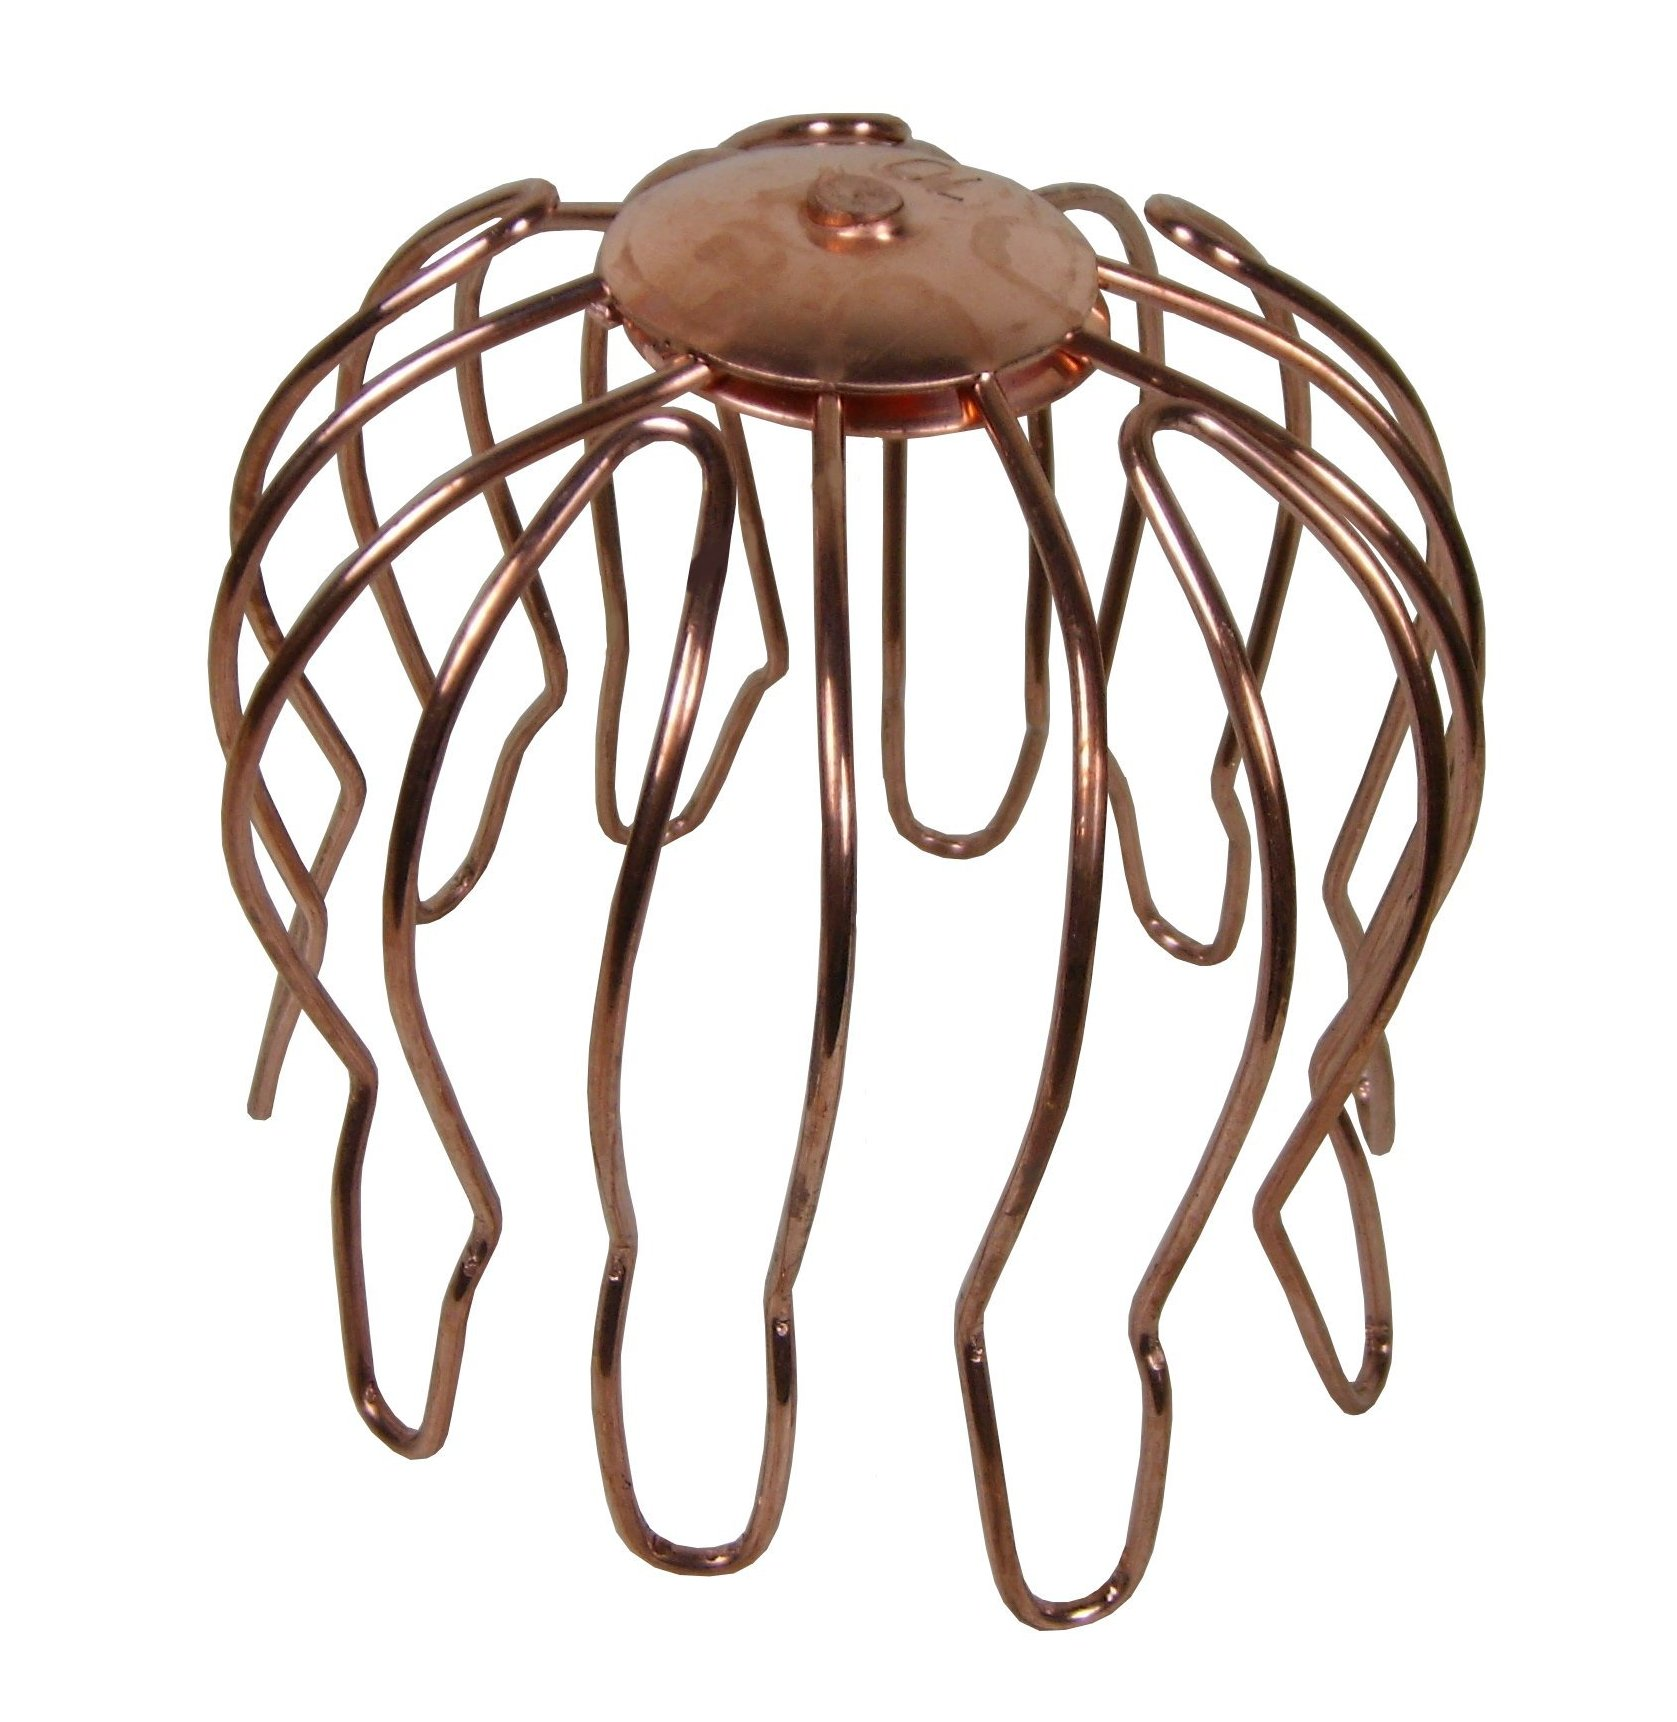 Wire Strainers Prevent Leaves And Other Debris From